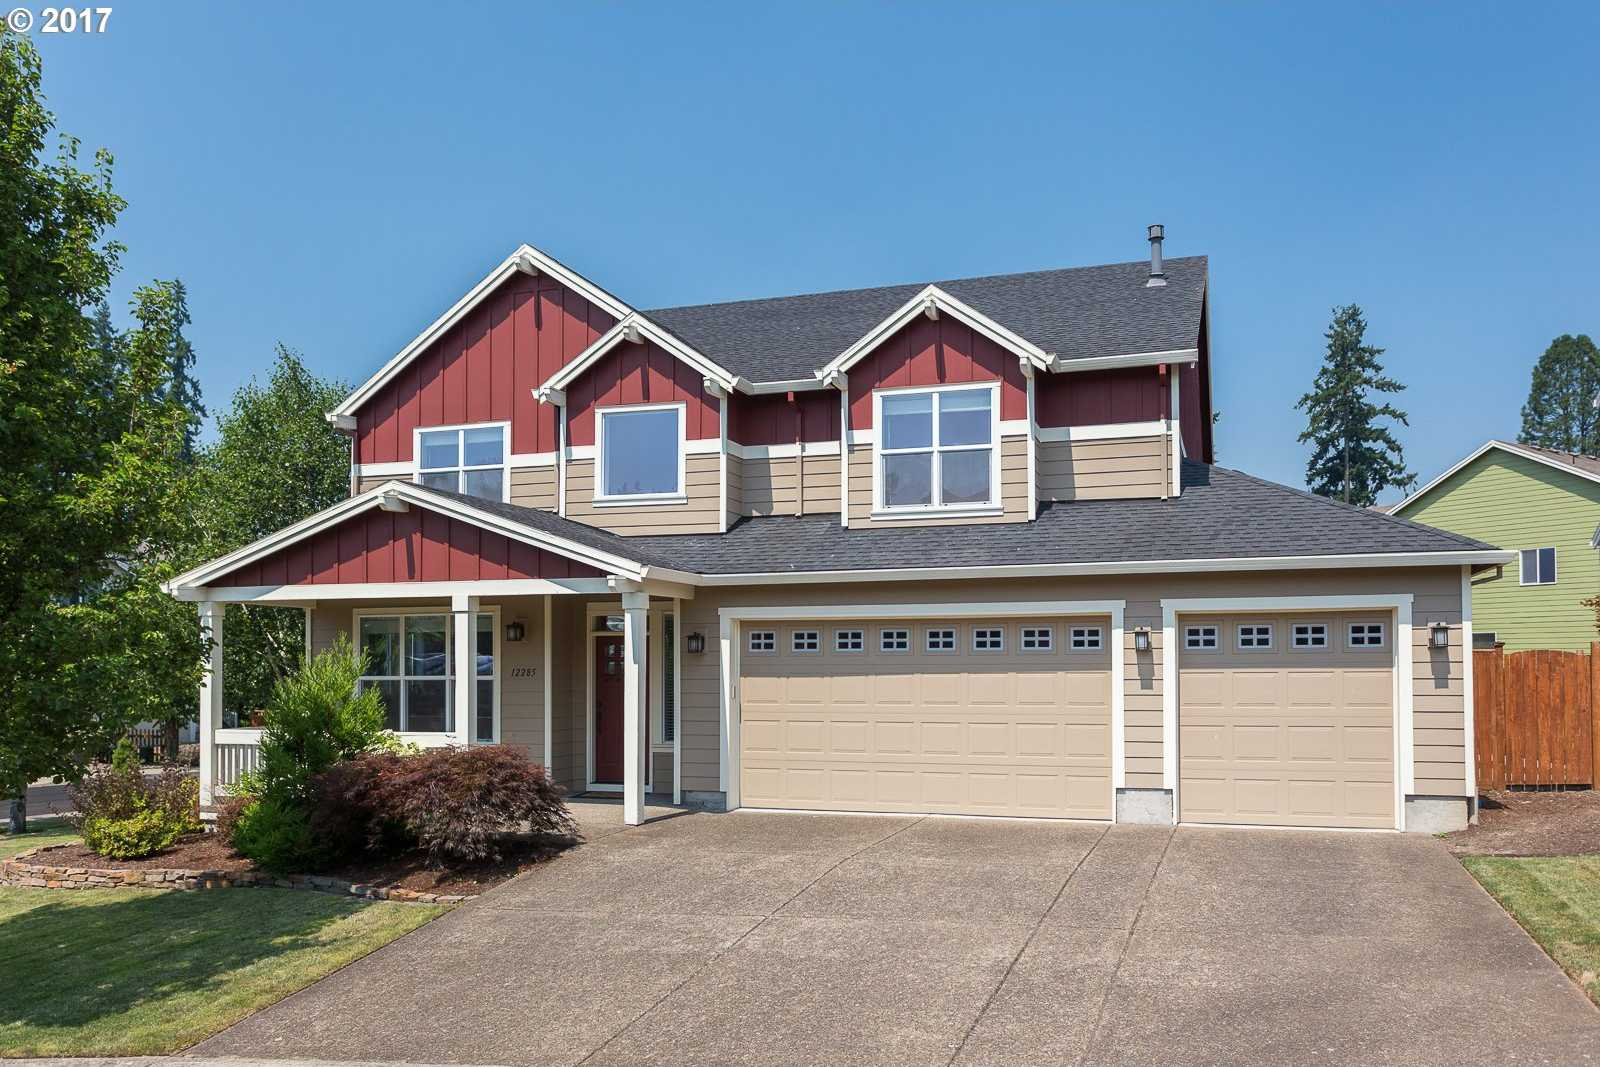 $550,000 - 5Br/3Ba -  for Sale in Tigard